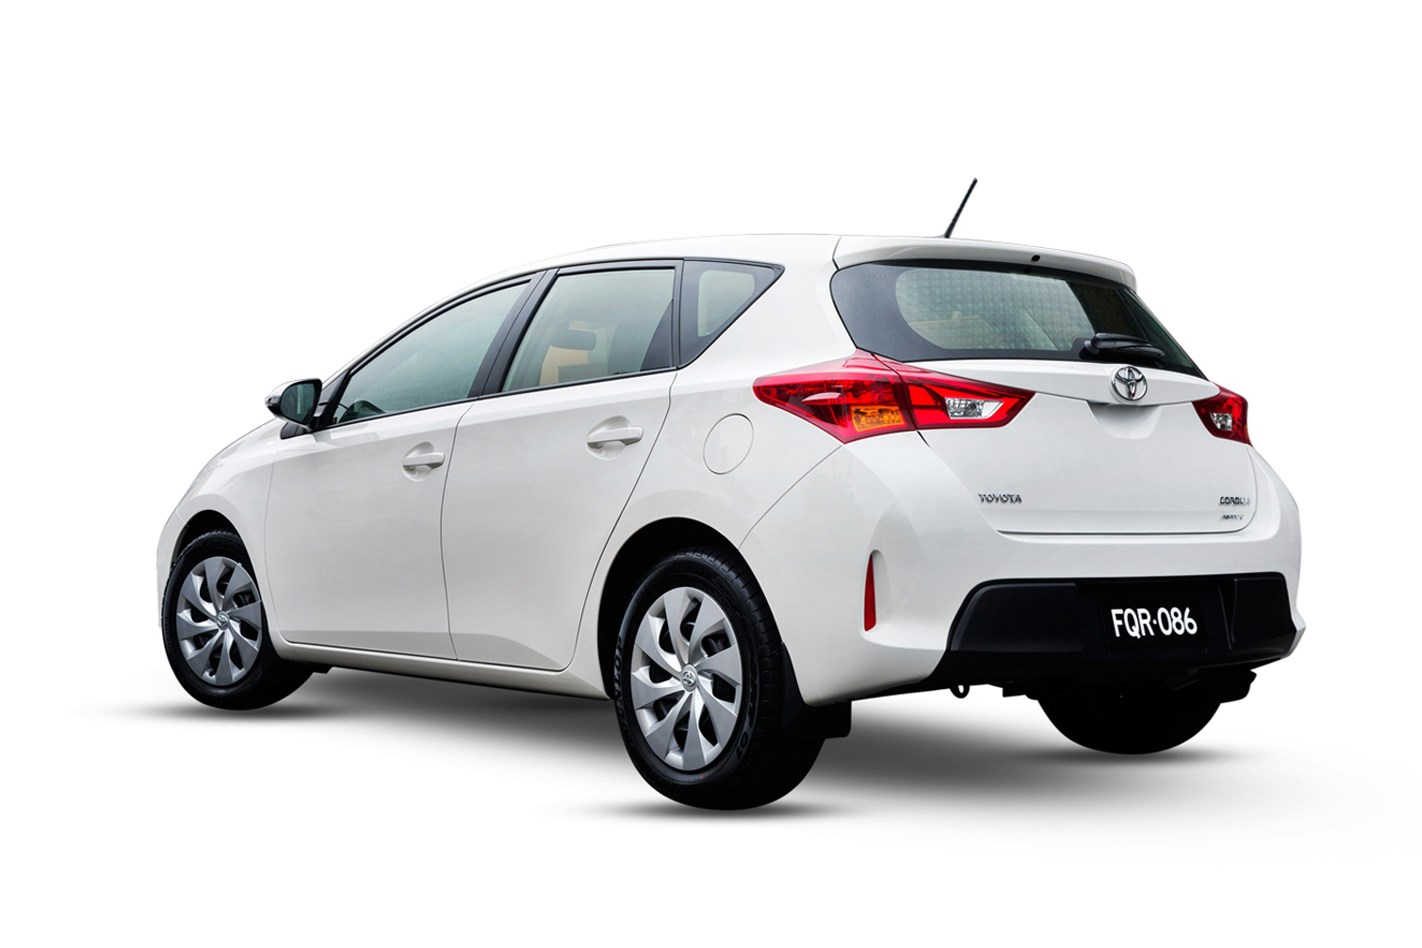 Pin 2016 Toyota Corolla Hatch Revealed With Updated Design ...